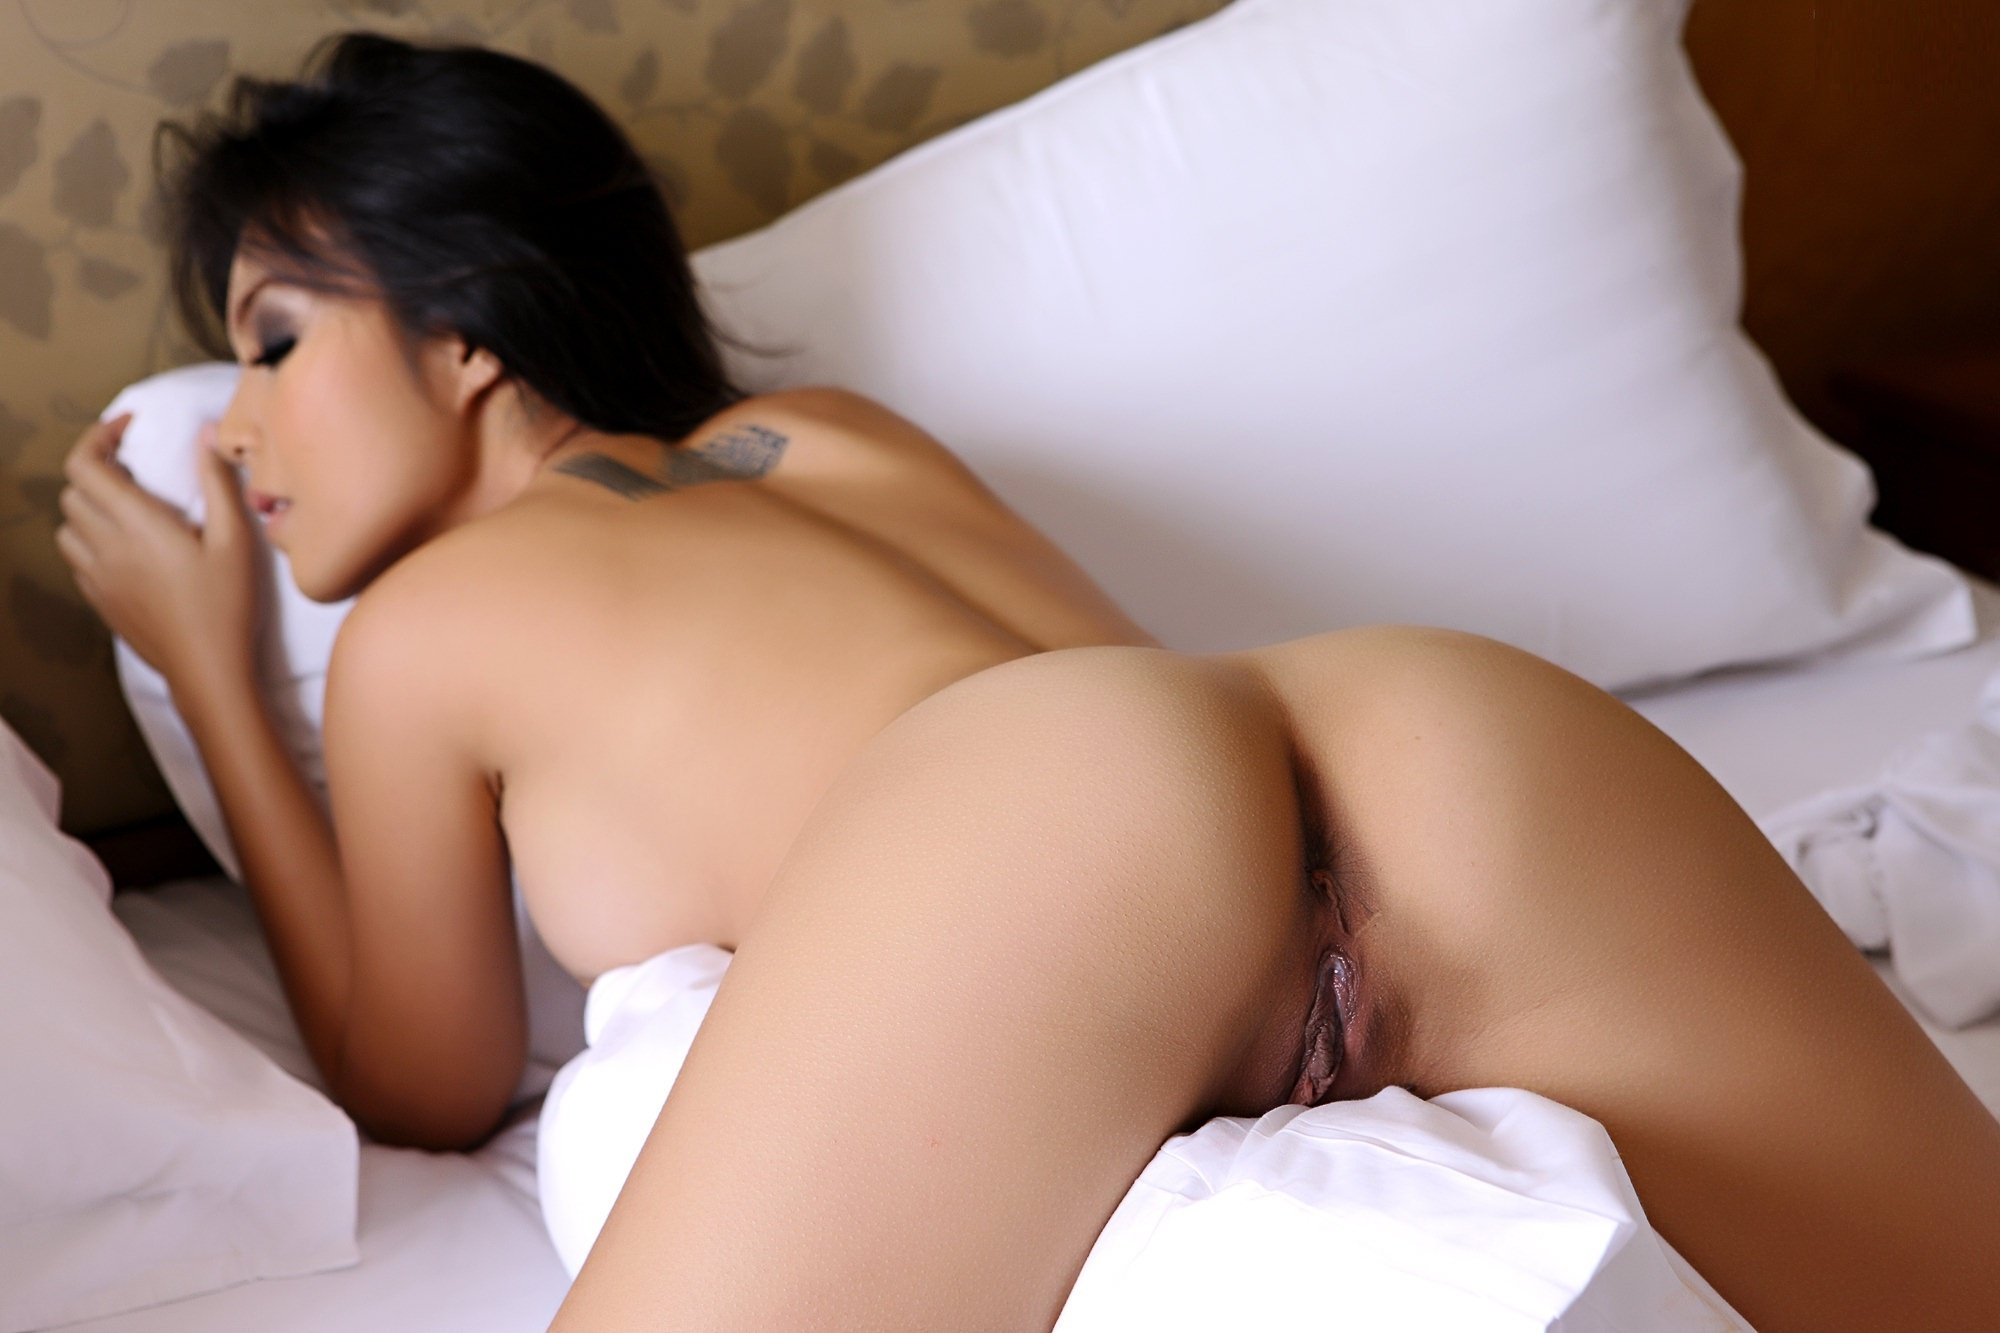 Wallpaper Asian, Brunette, Hot, Sexy, Aveta, Ass, Pussy -8013